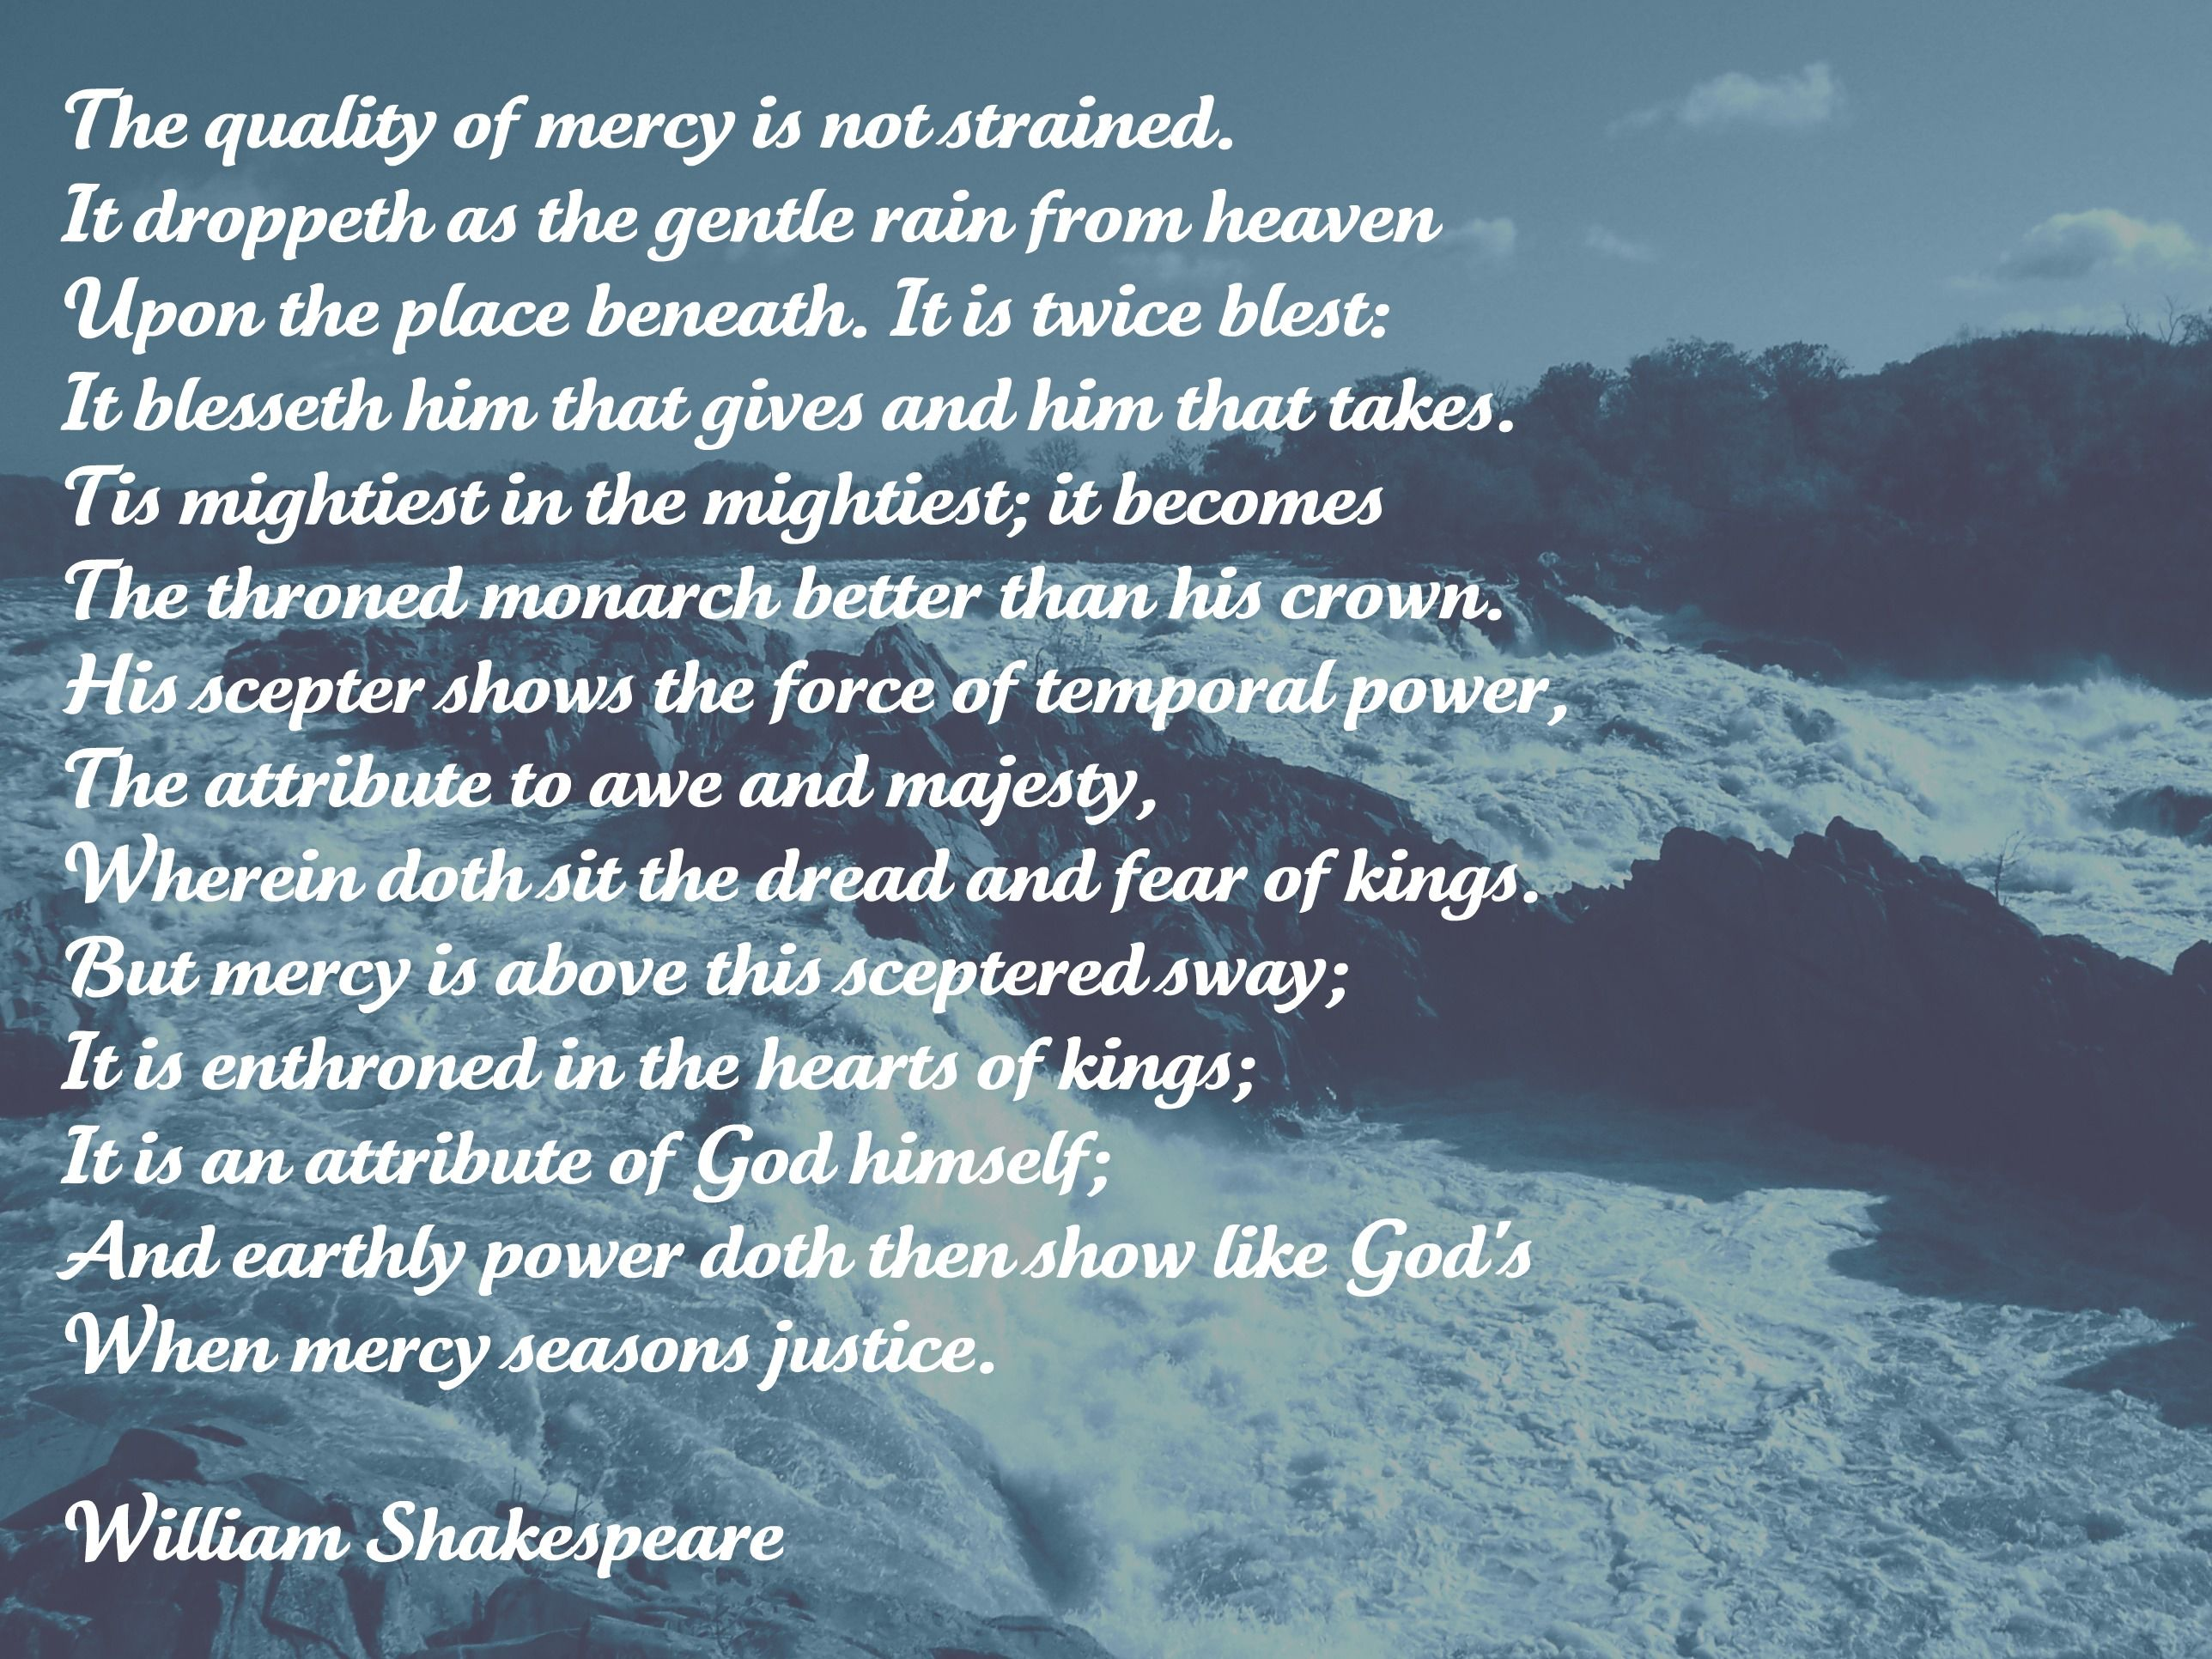 merchant of venice shylock essay best images about shakespeare the  best images about merchant of venice the i love this shakespeare quote from the merchant of